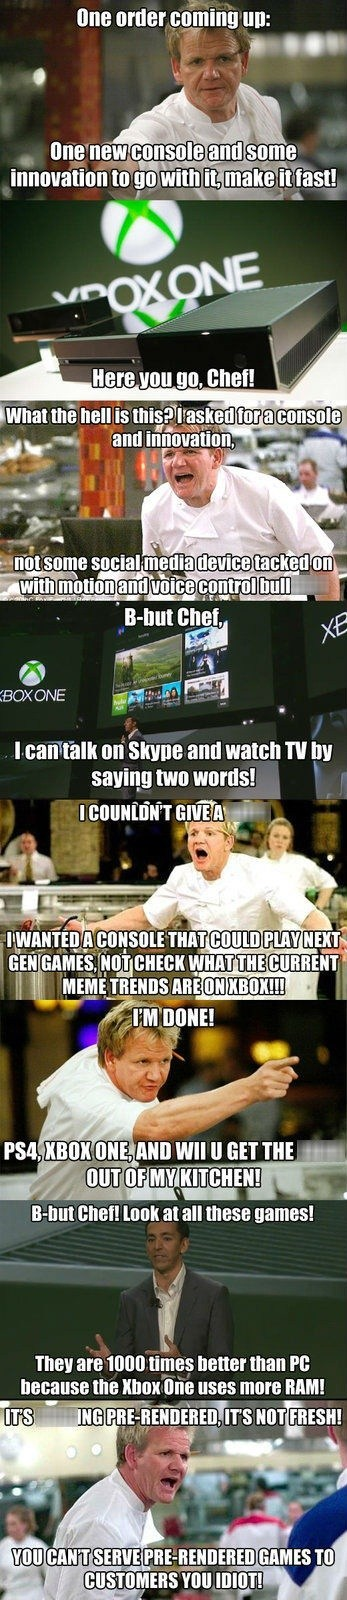 Gordon Ramsay's Take on the Xbox One